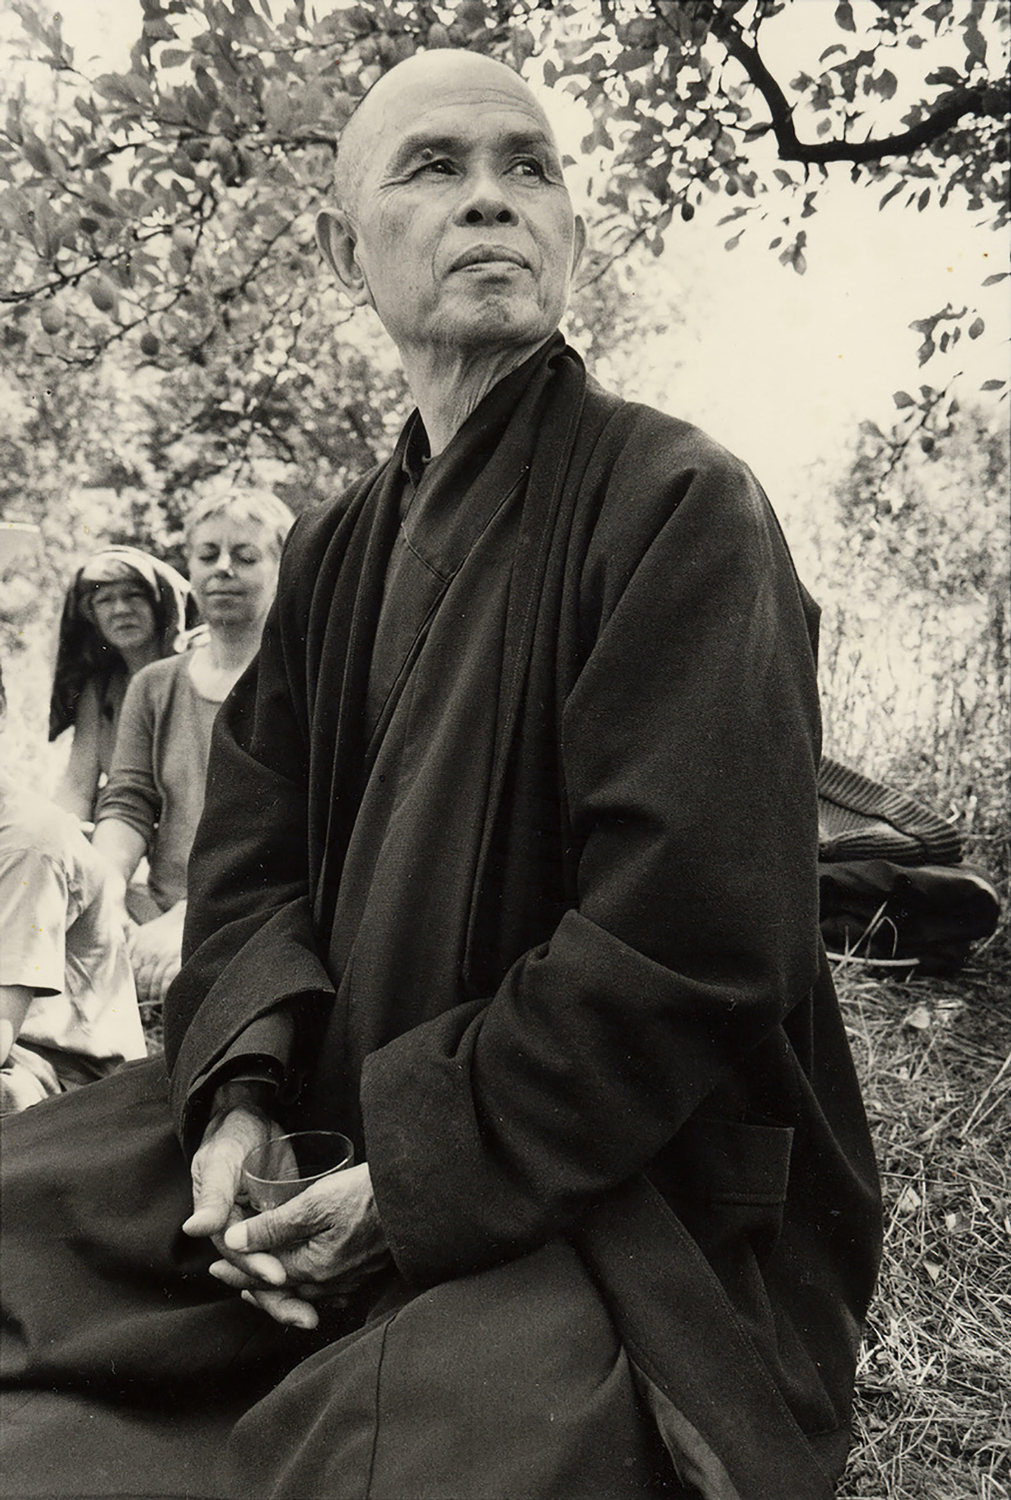 Thich Nhat Hanh. Zen Master and key figure in Meditation and Mindfulness.